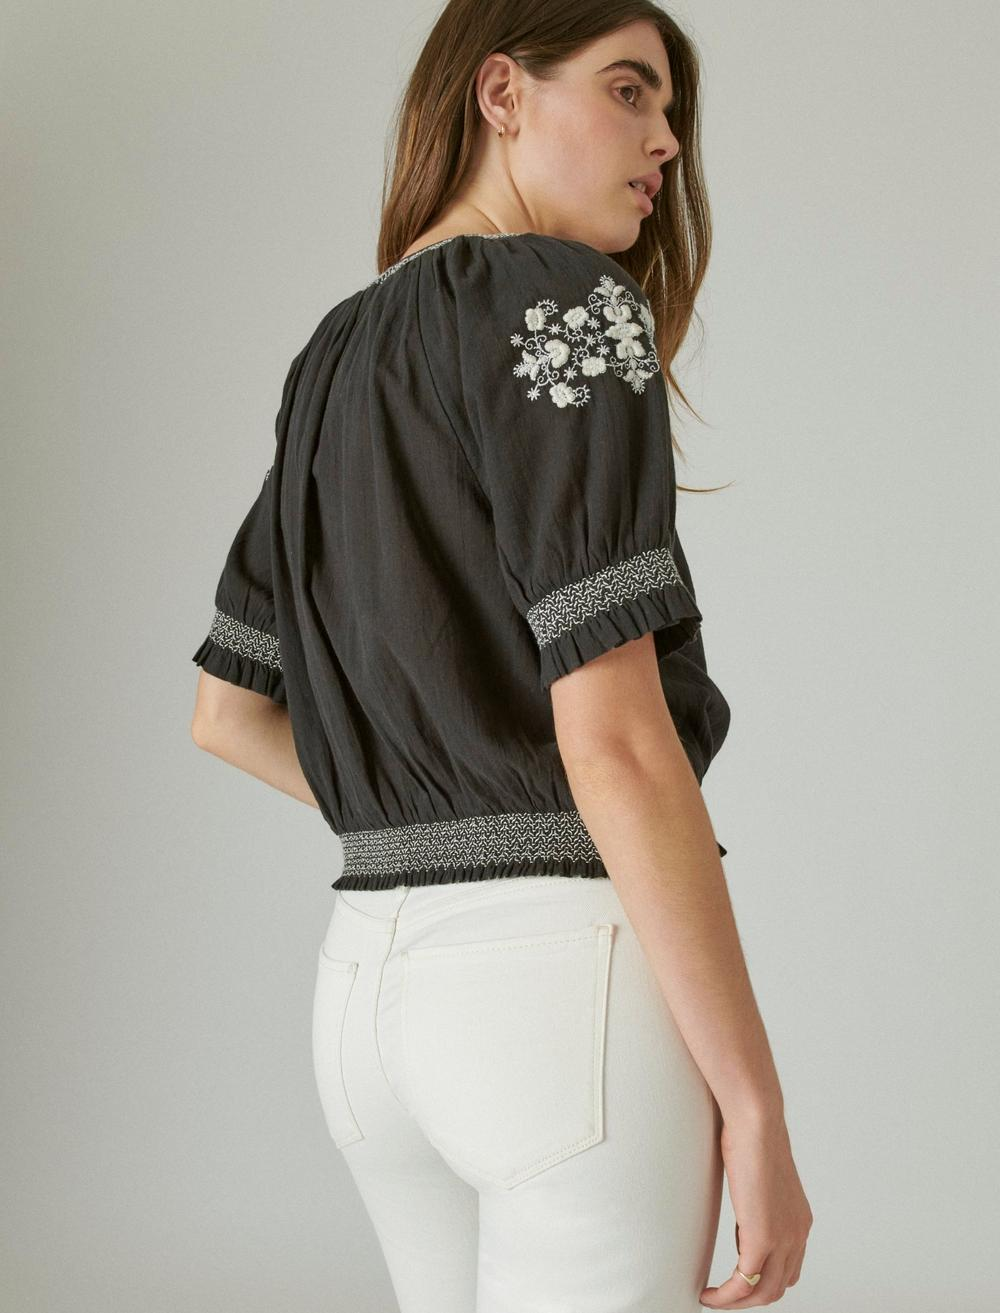 EMBROIDERED SHORT SLEEVE TOP, image 4